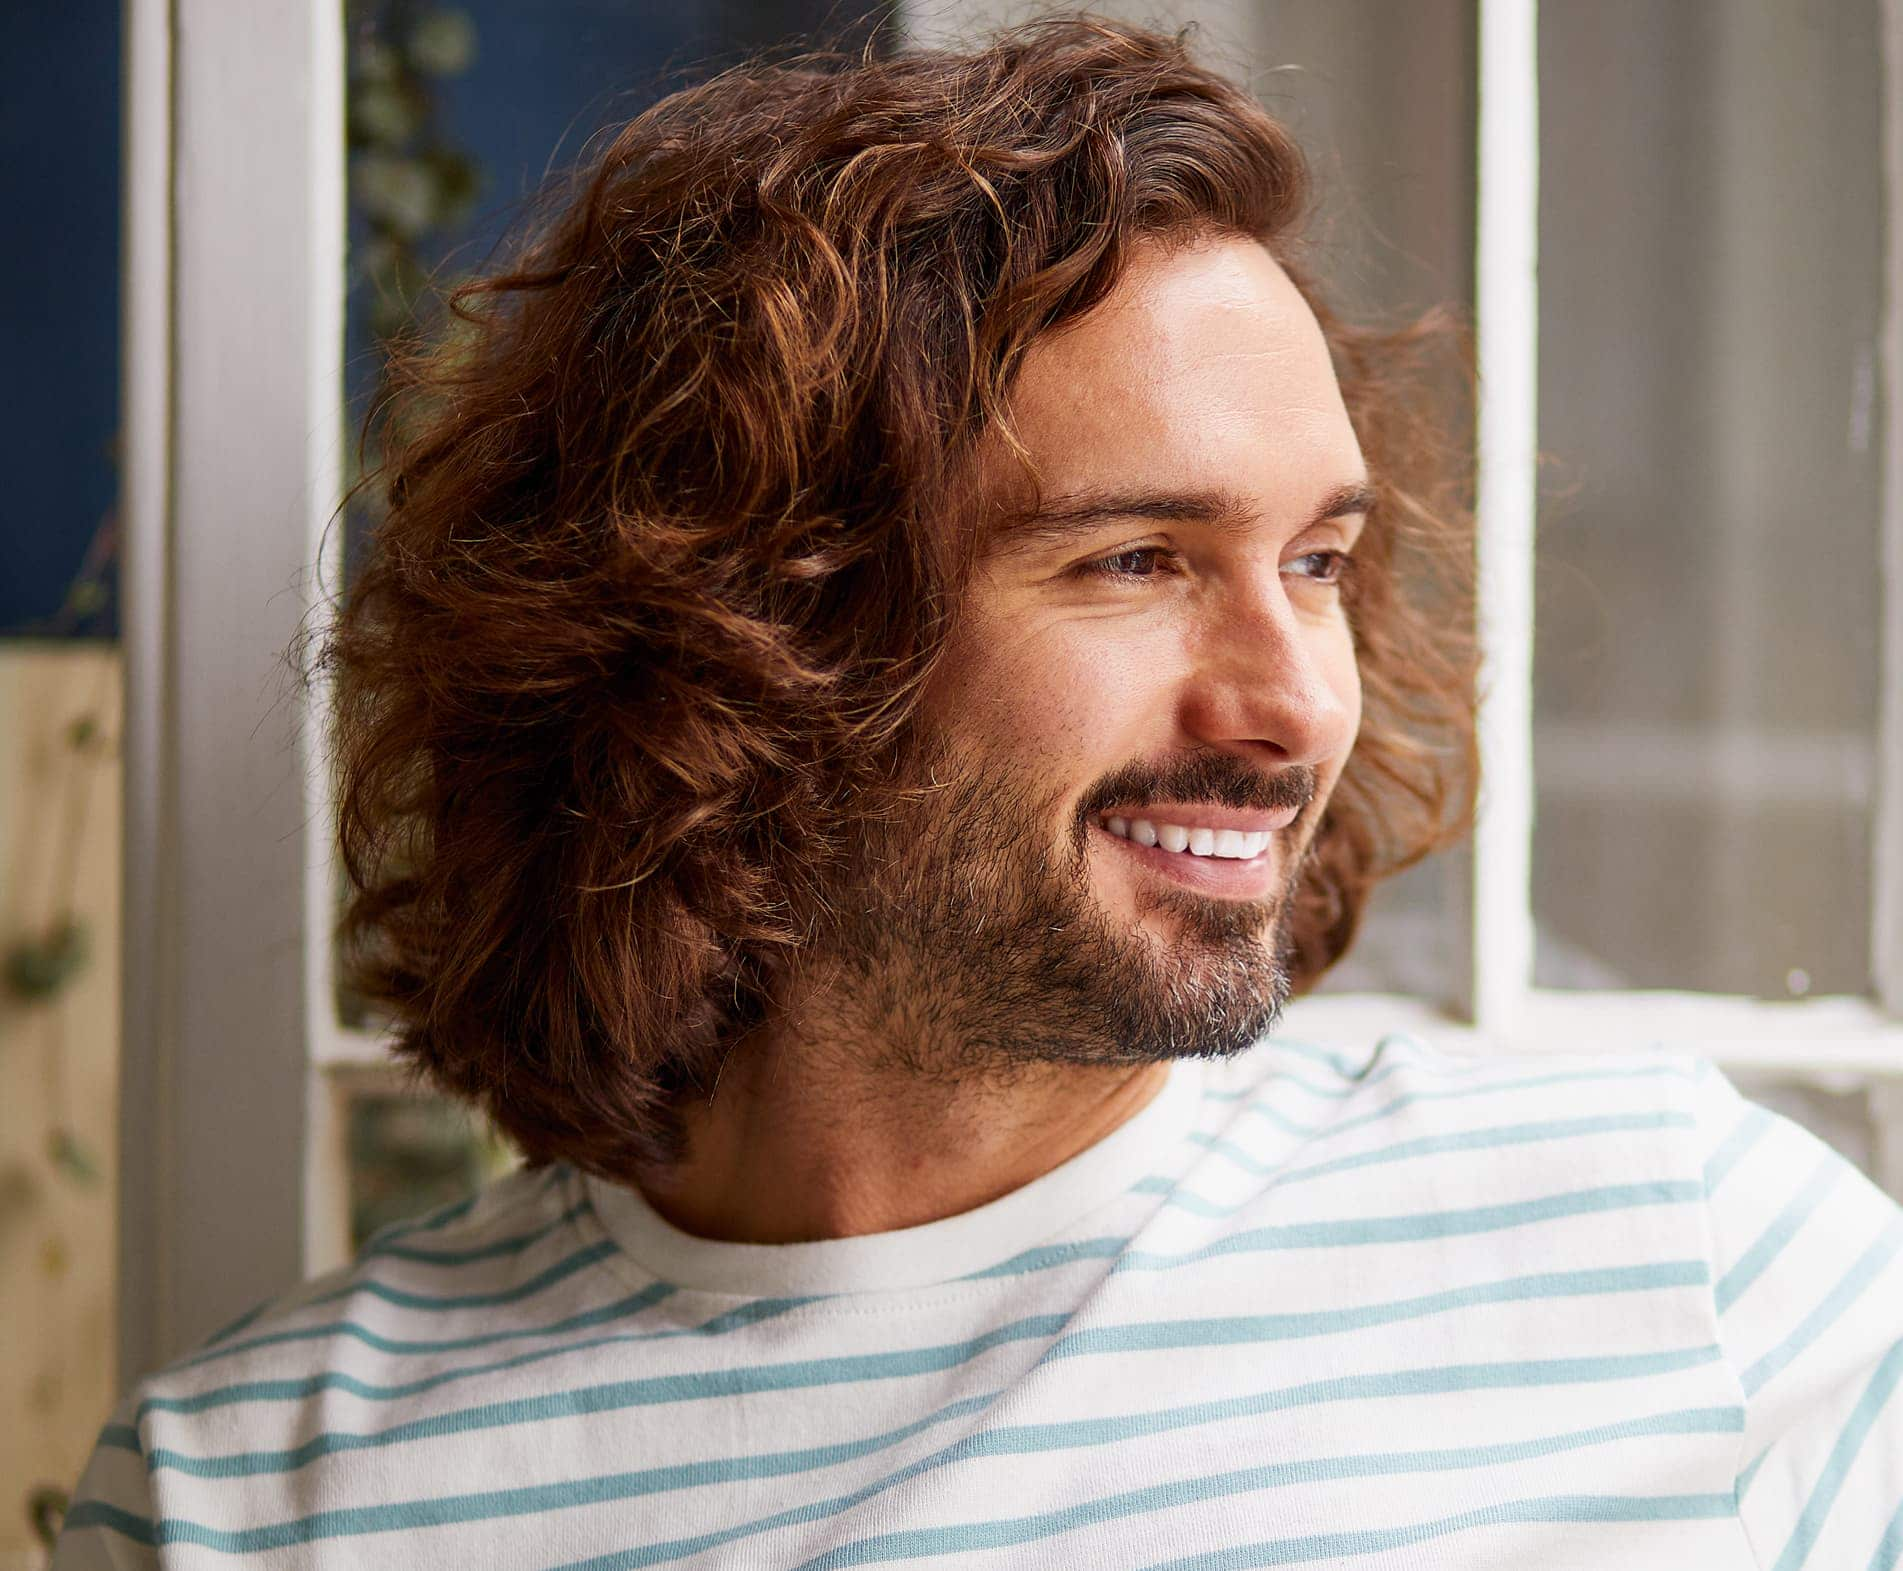 Joe Wicks' Tips For A Healthy Start In January